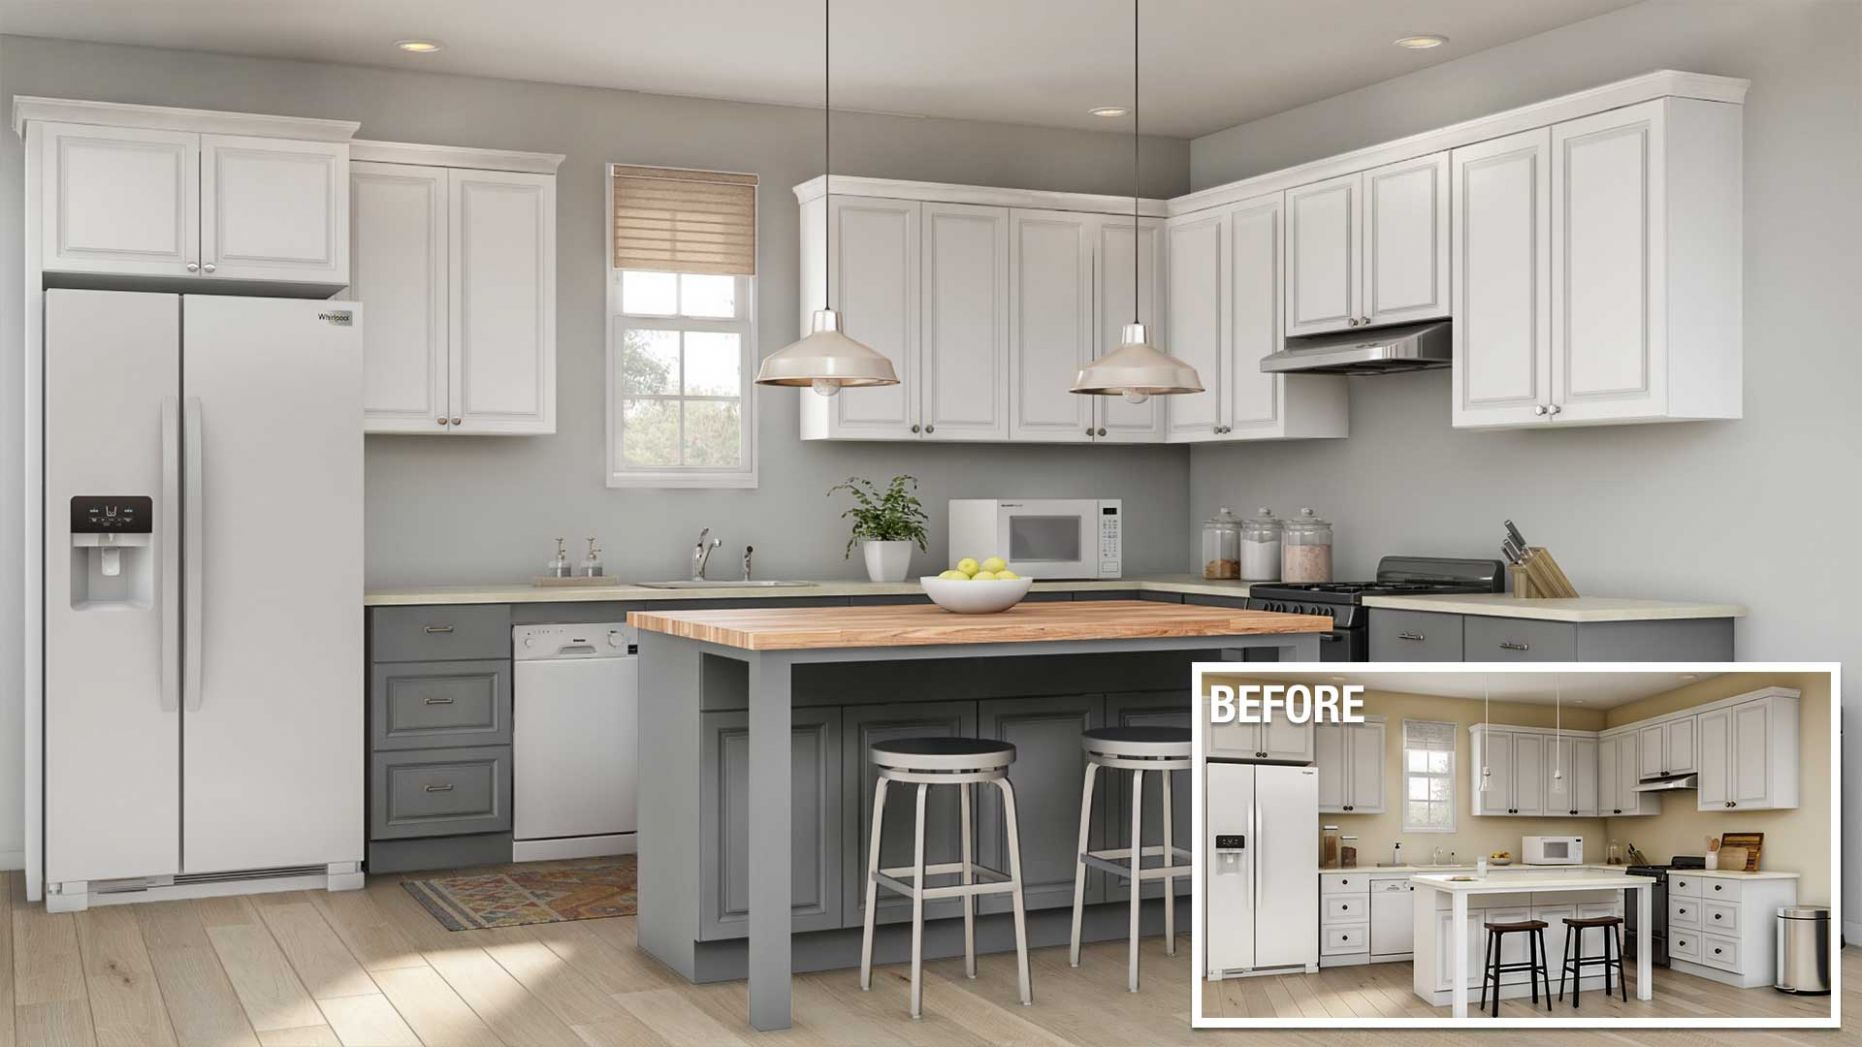 Cost to Remodel a Kitchen - The Home Depot - kitchen ideas home depot